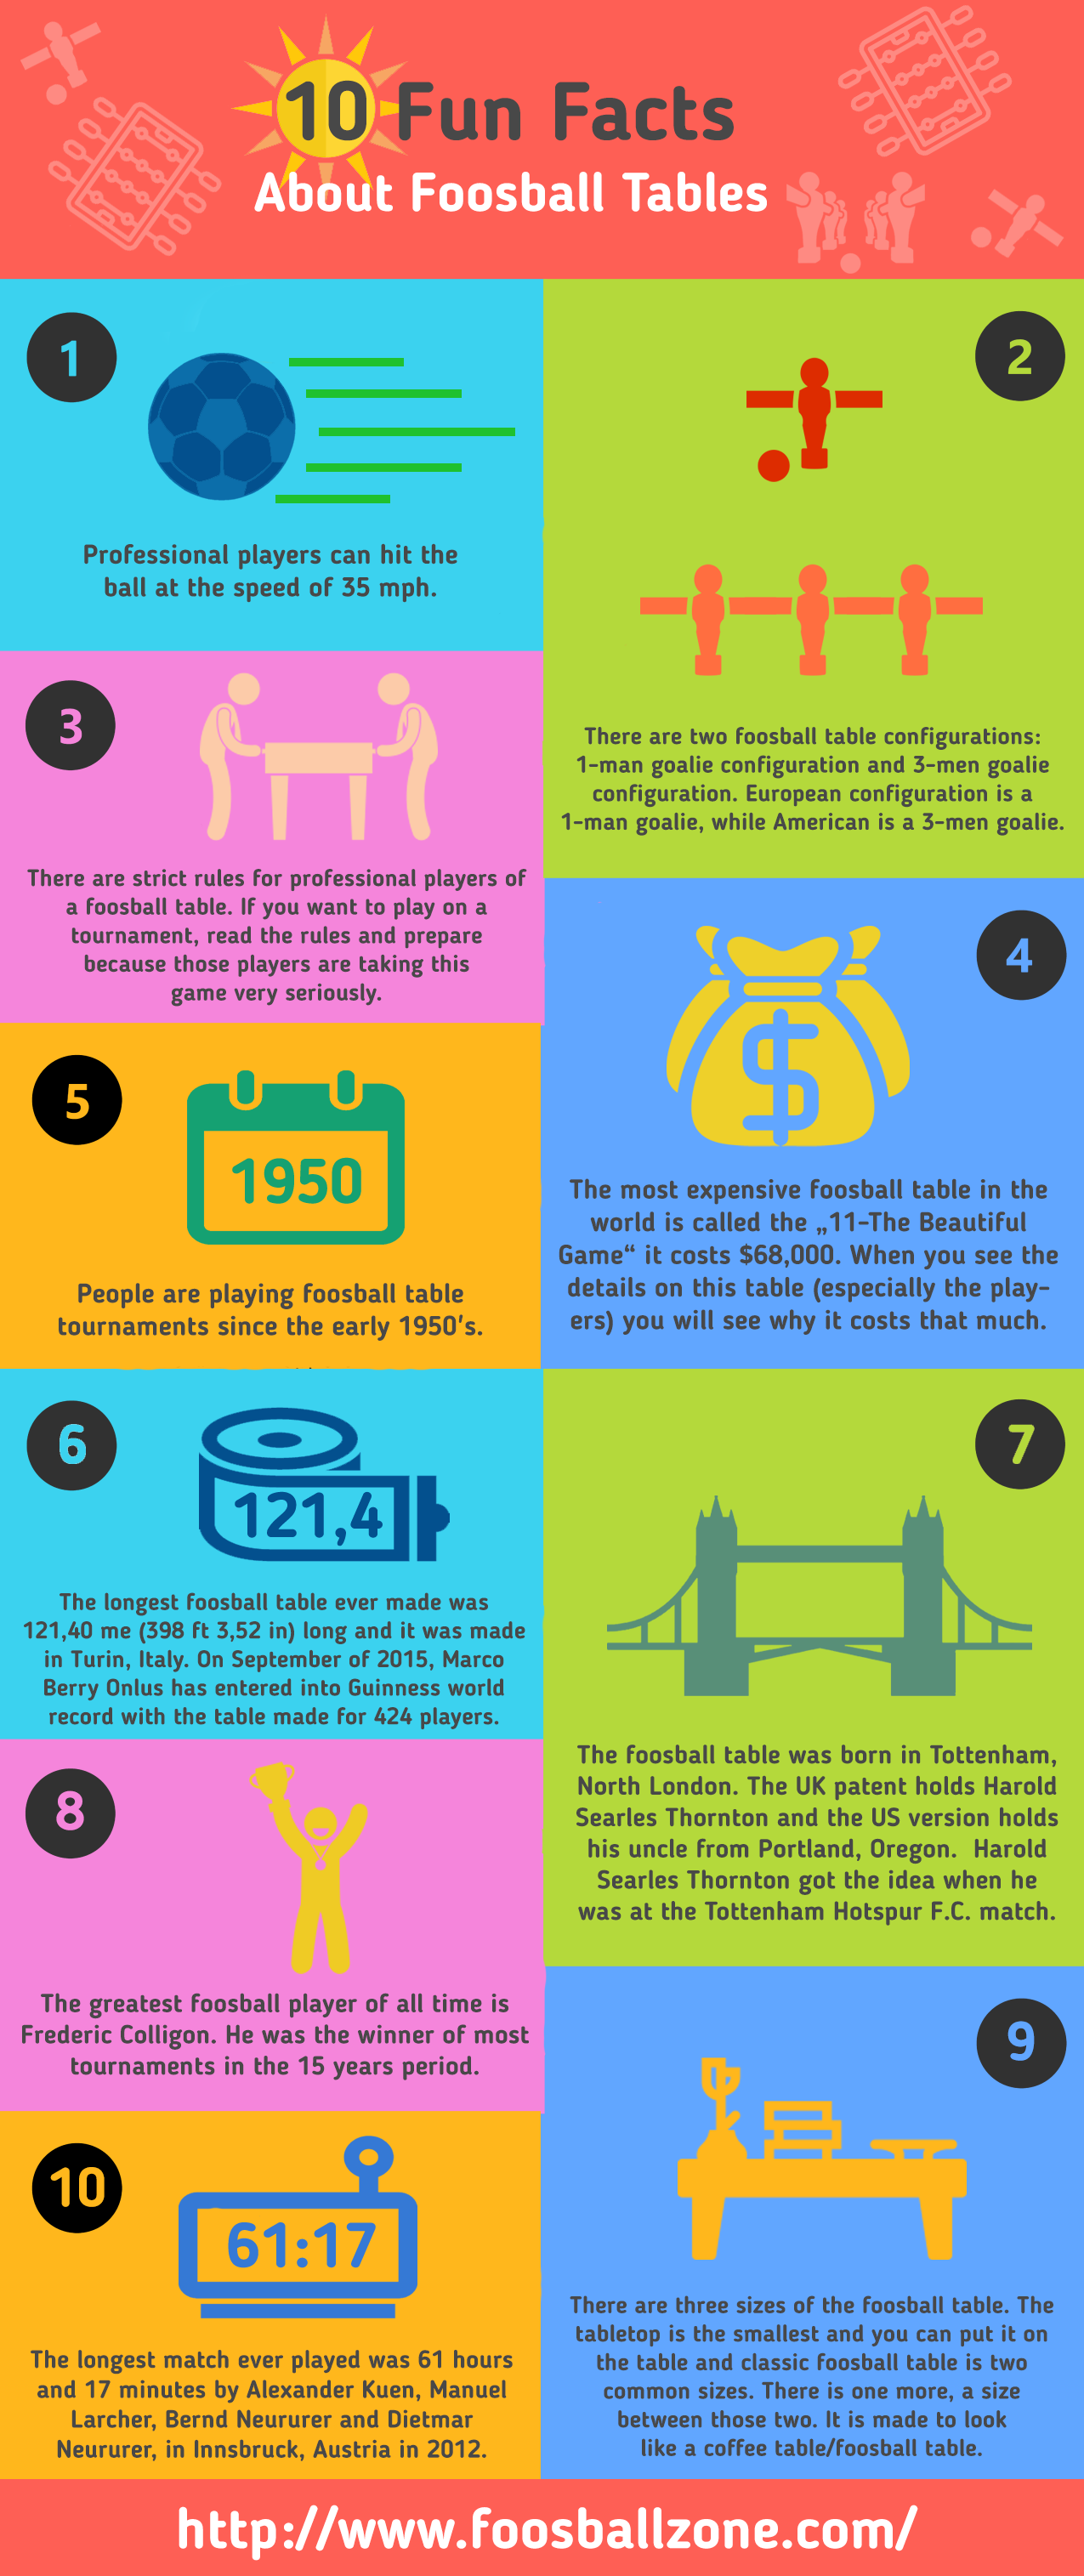 Fun And Interesting Facts About Foosball Tables